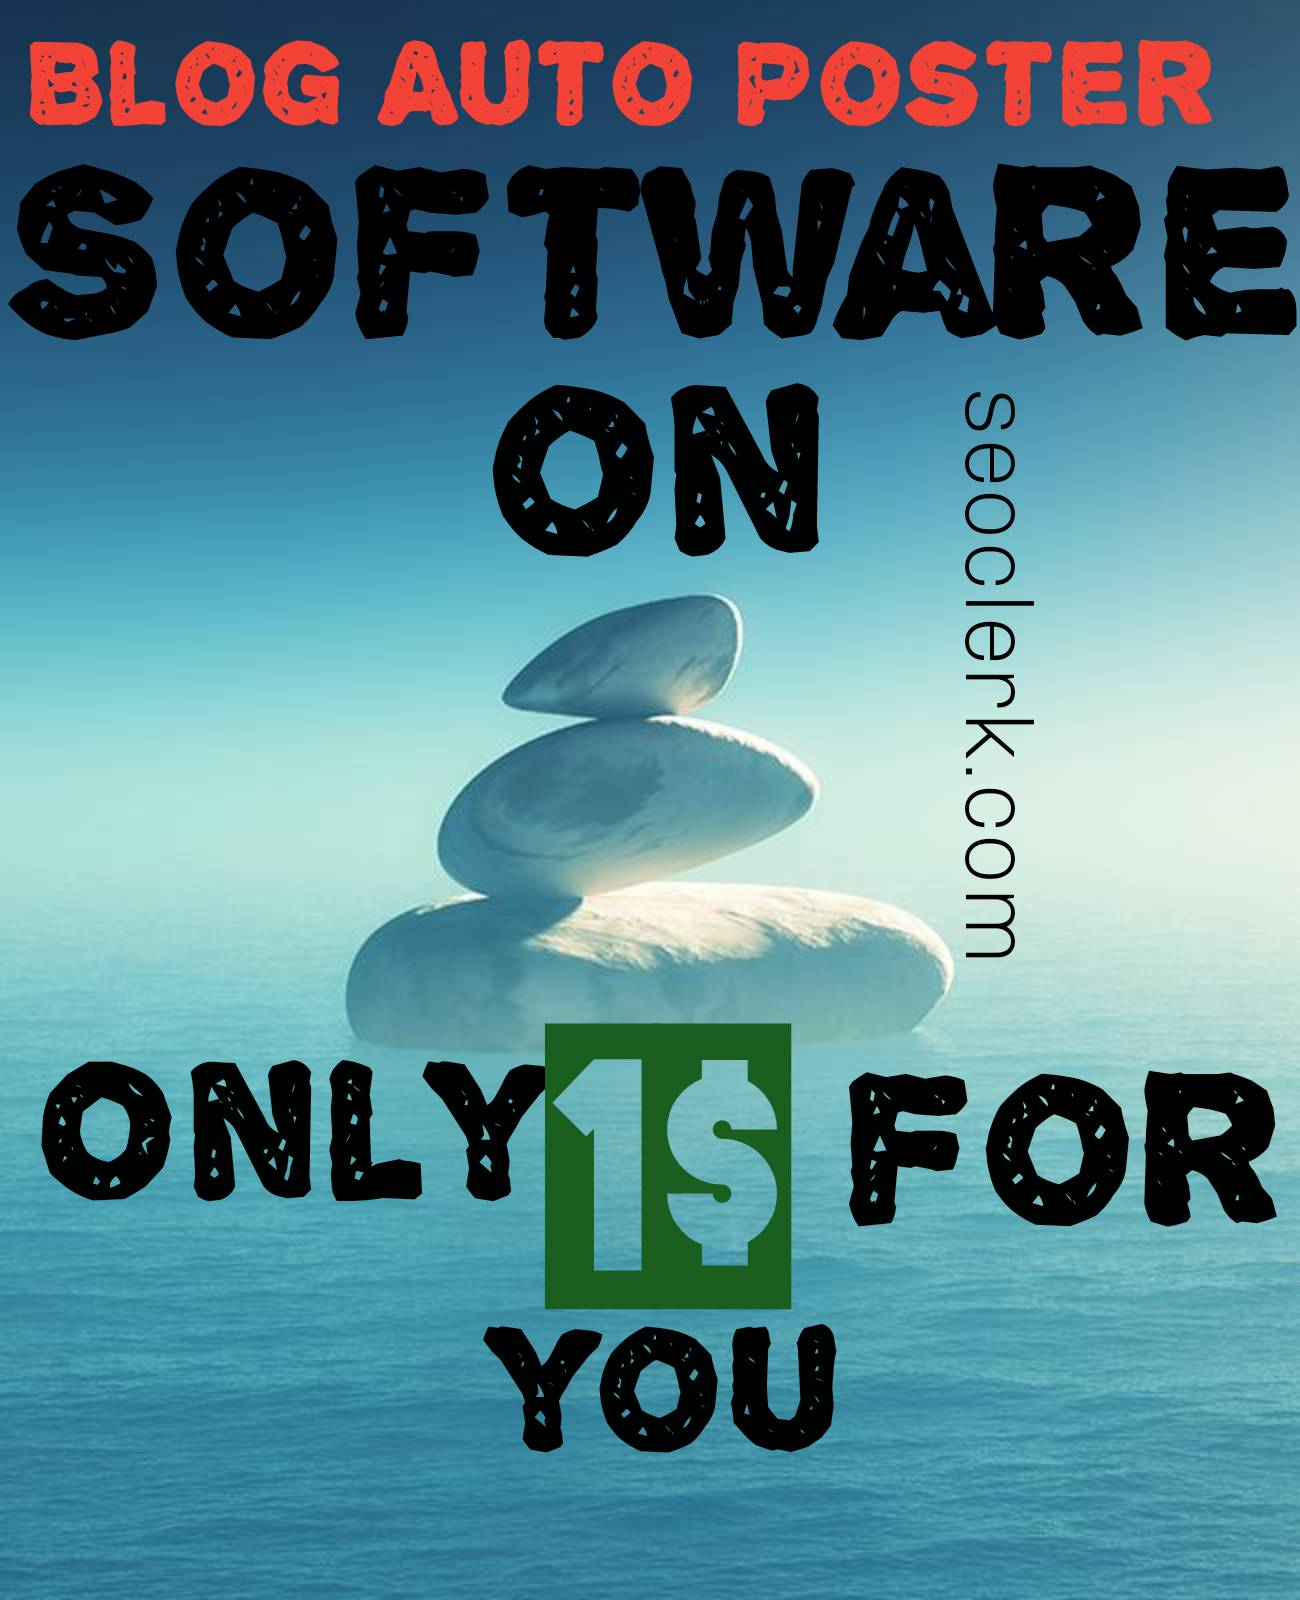 Blog Auto poster software this software help you put your blog atomic